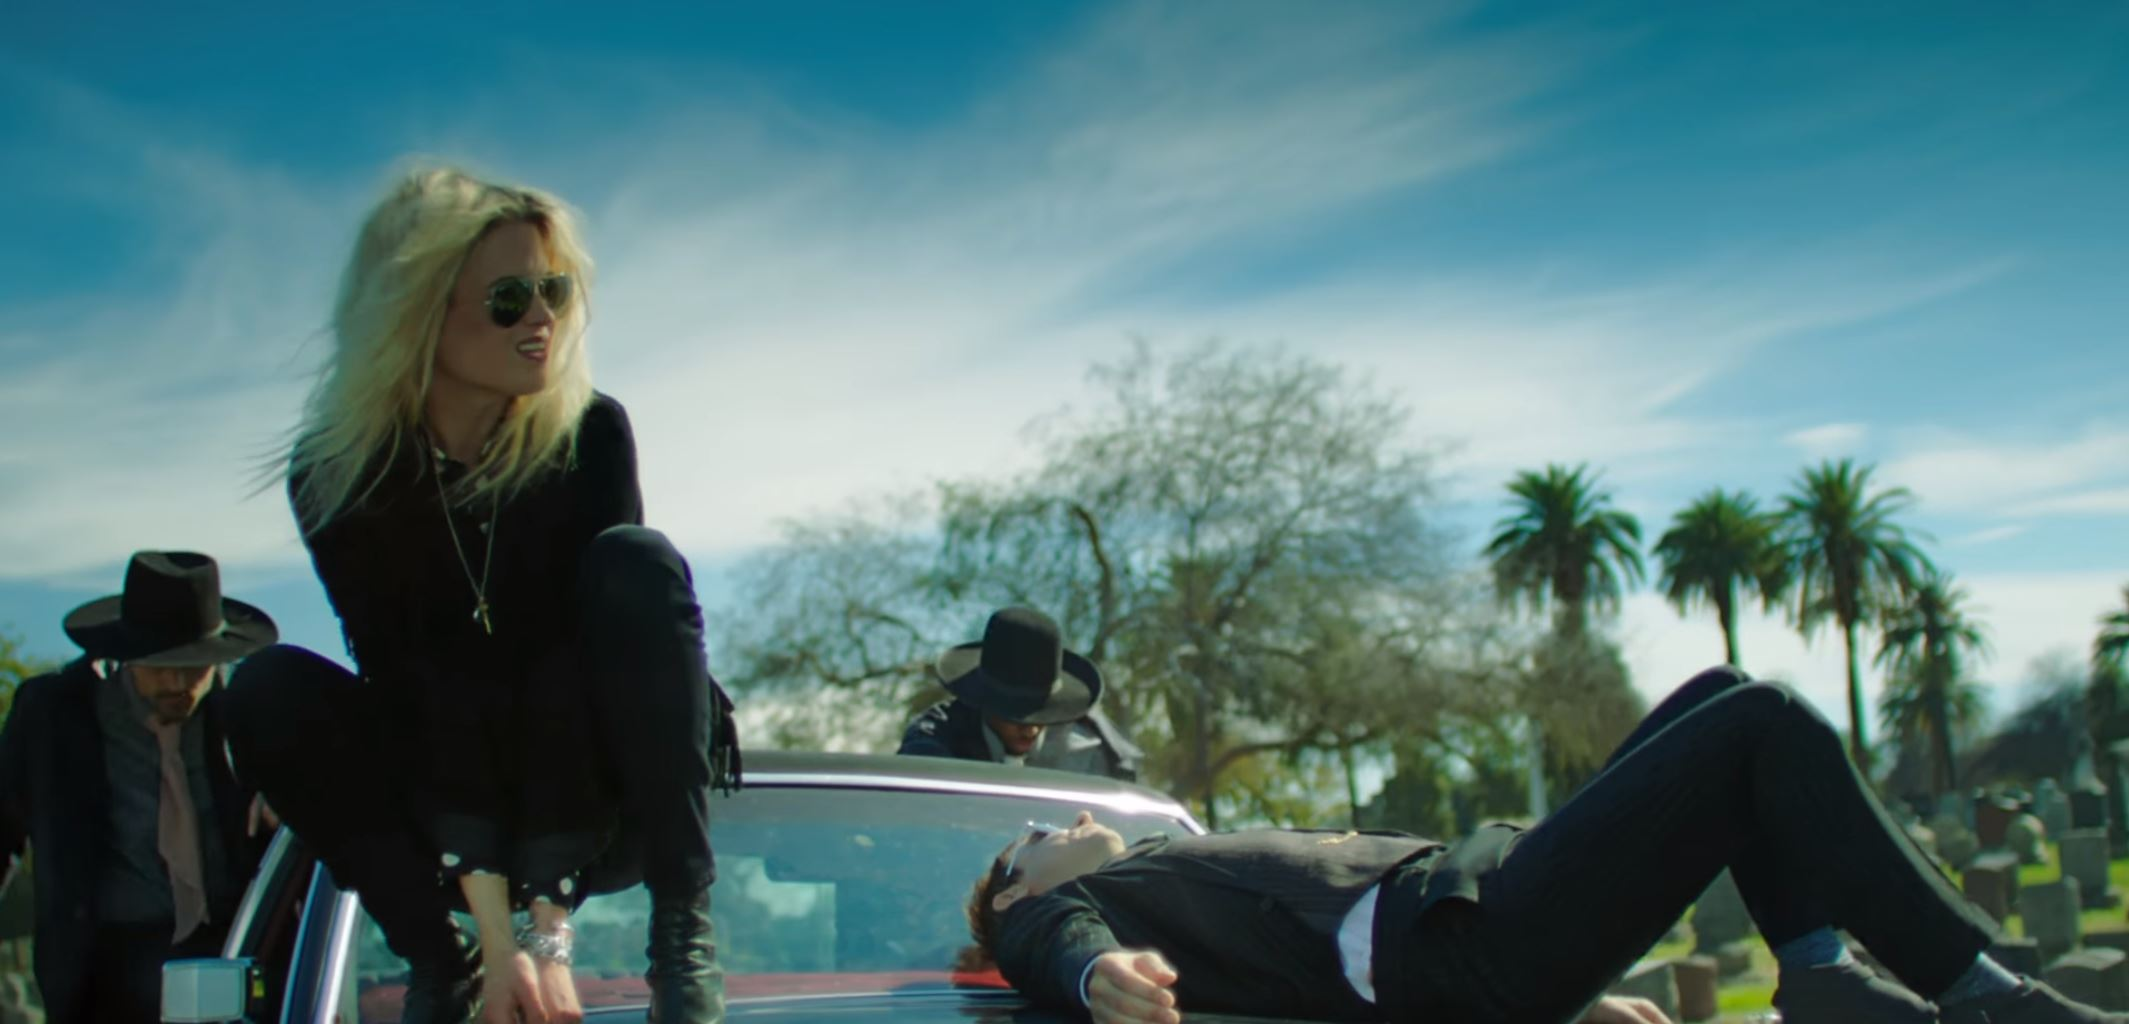 New Video And Album From The Kills!